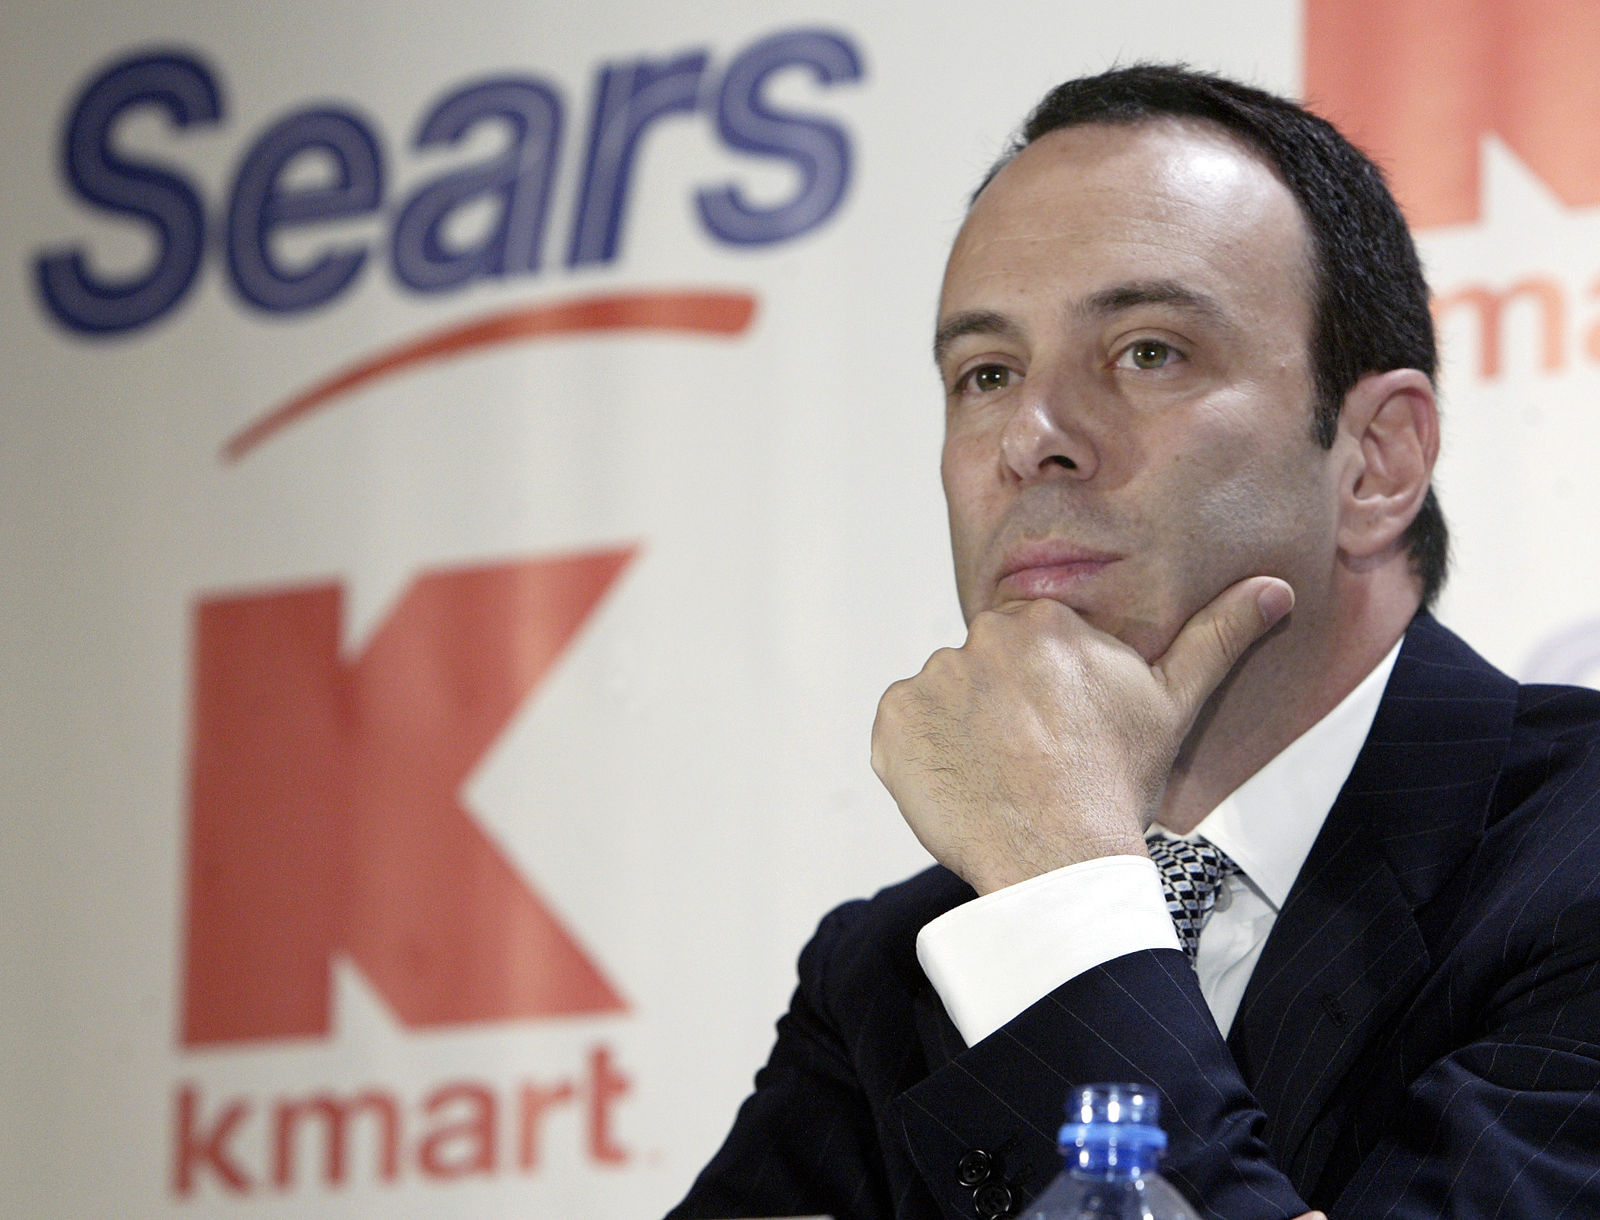 FILE- In this Nov. 17, 2004, file photo Kmart chairman Edward Lampert listens during a news conference to announce the merger of Kmart and Sears in New York. (AP Photo/Gregory Bull, File)